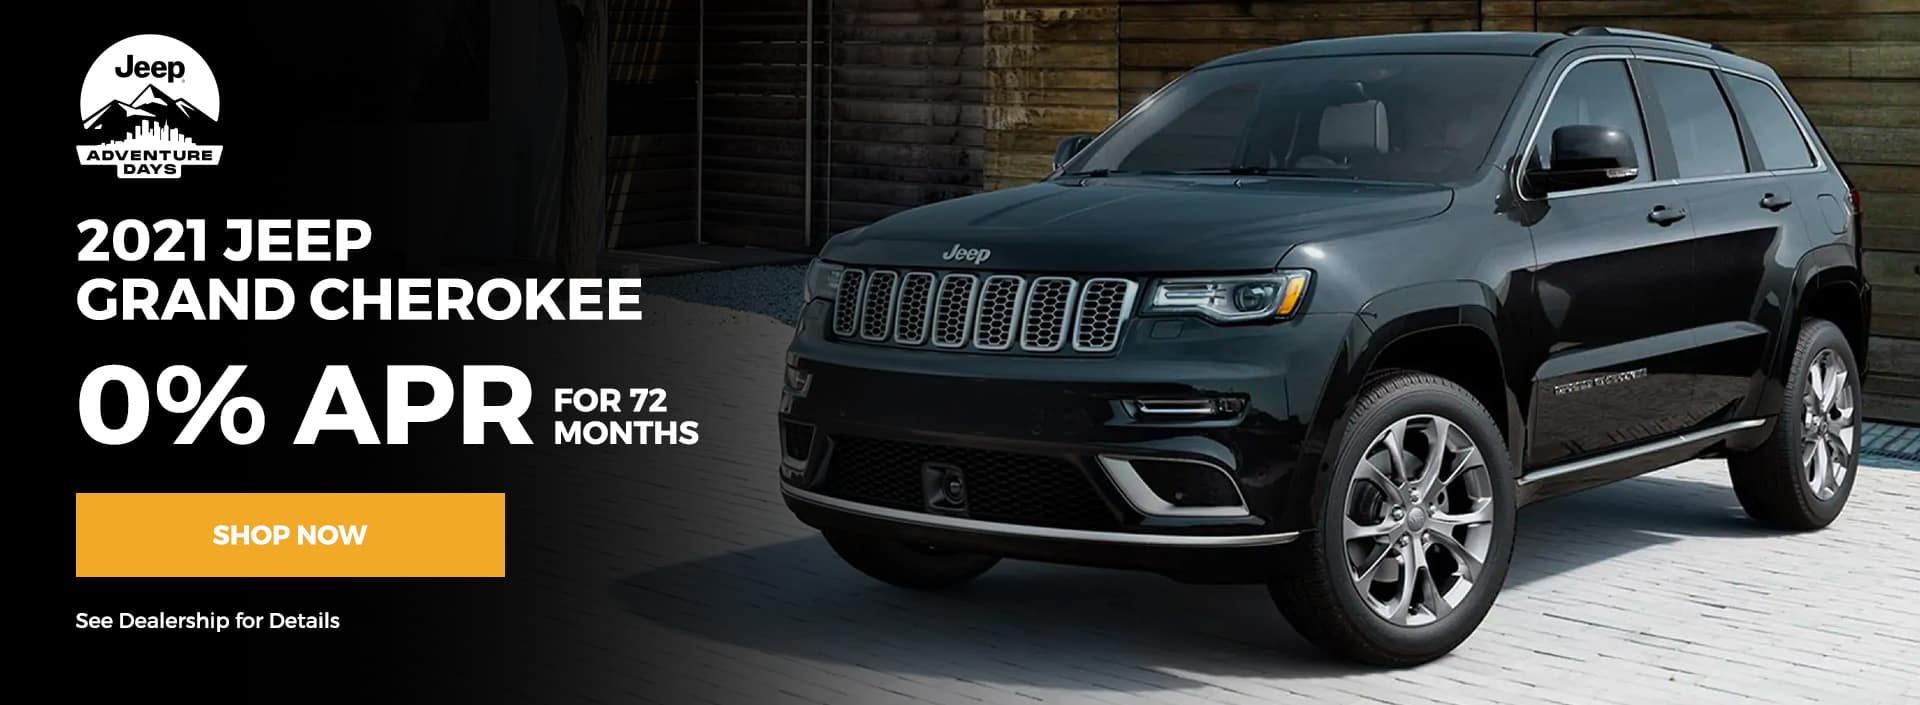 0% 72 months for the 2021 Jeep Grand Cherokee